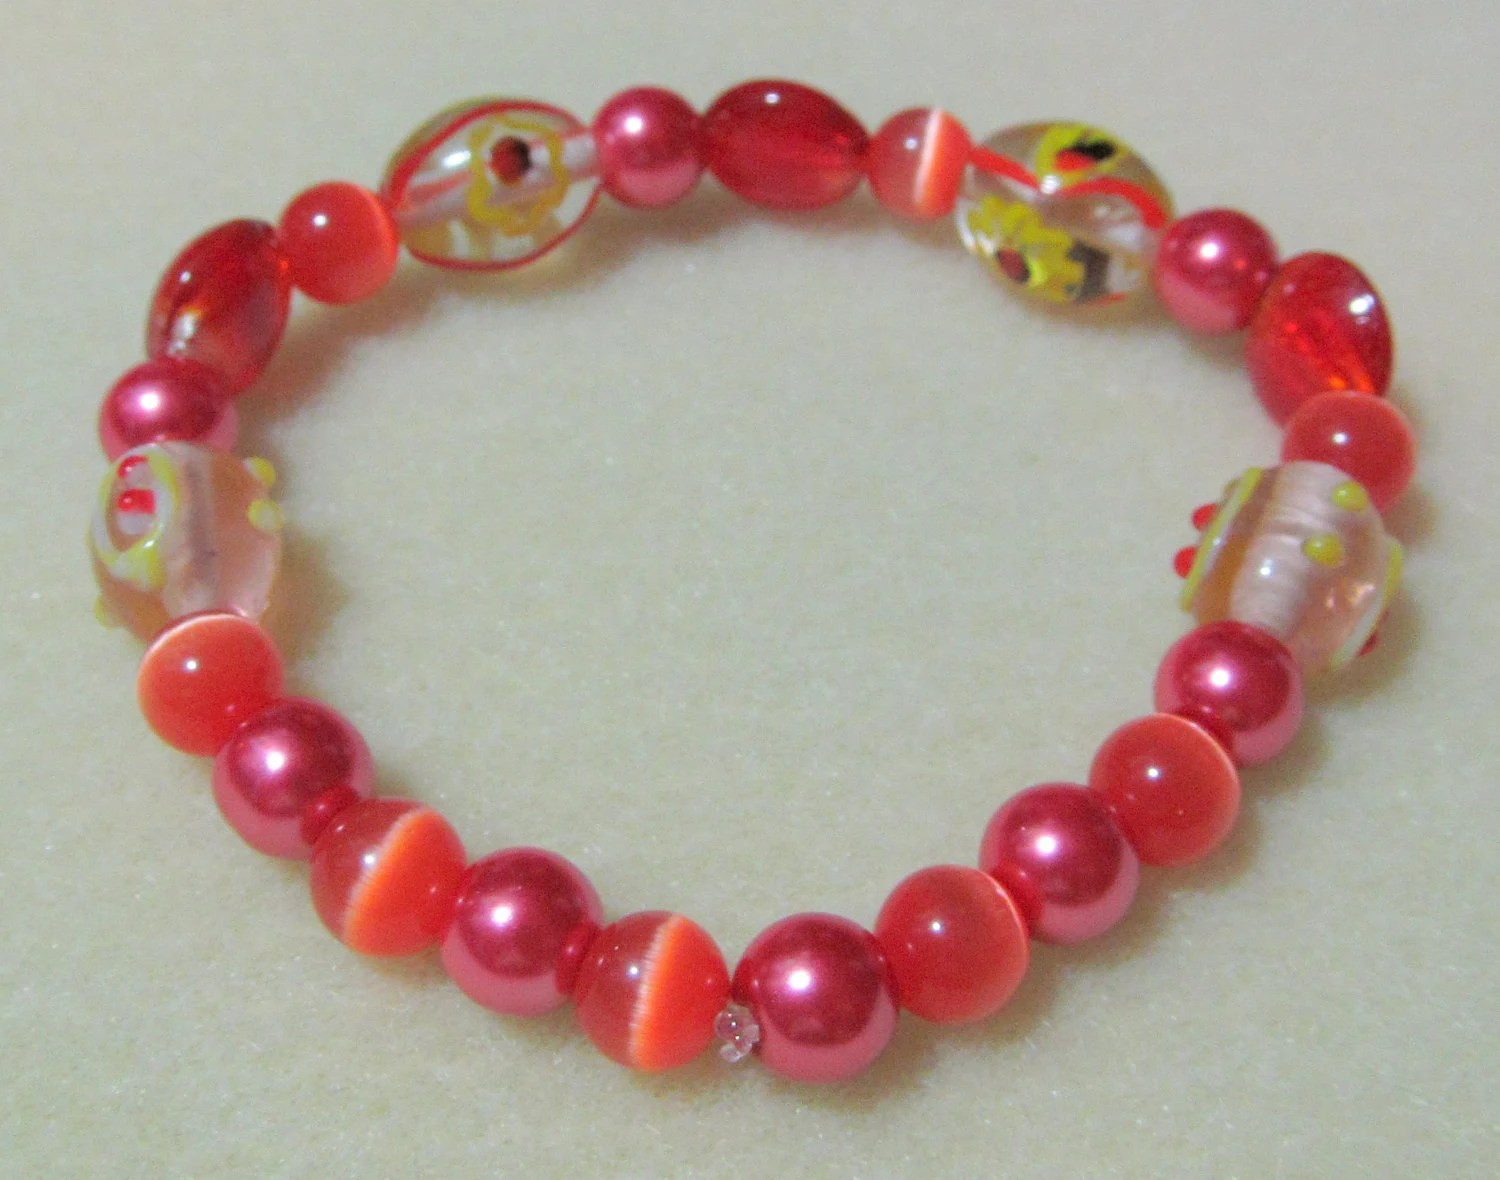 Bracelet -fun stretch magic red orange yellow glass pearl cat eye lampwork beads